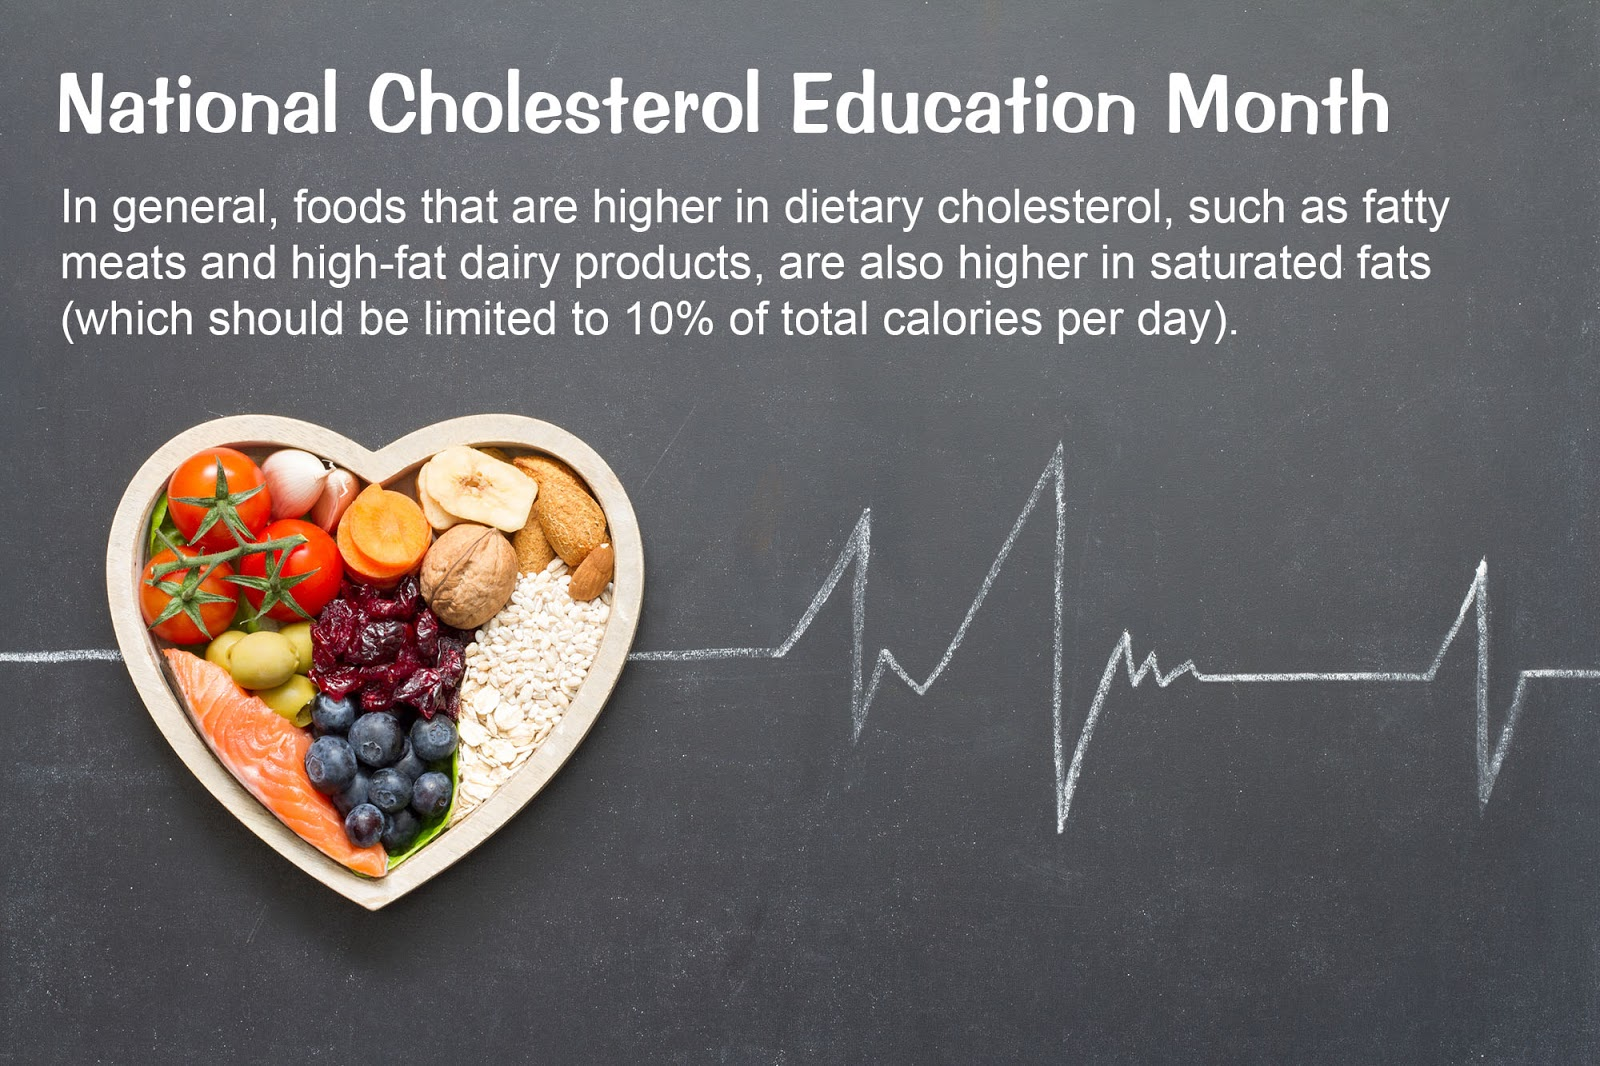 why should dietary cholesterol be limited